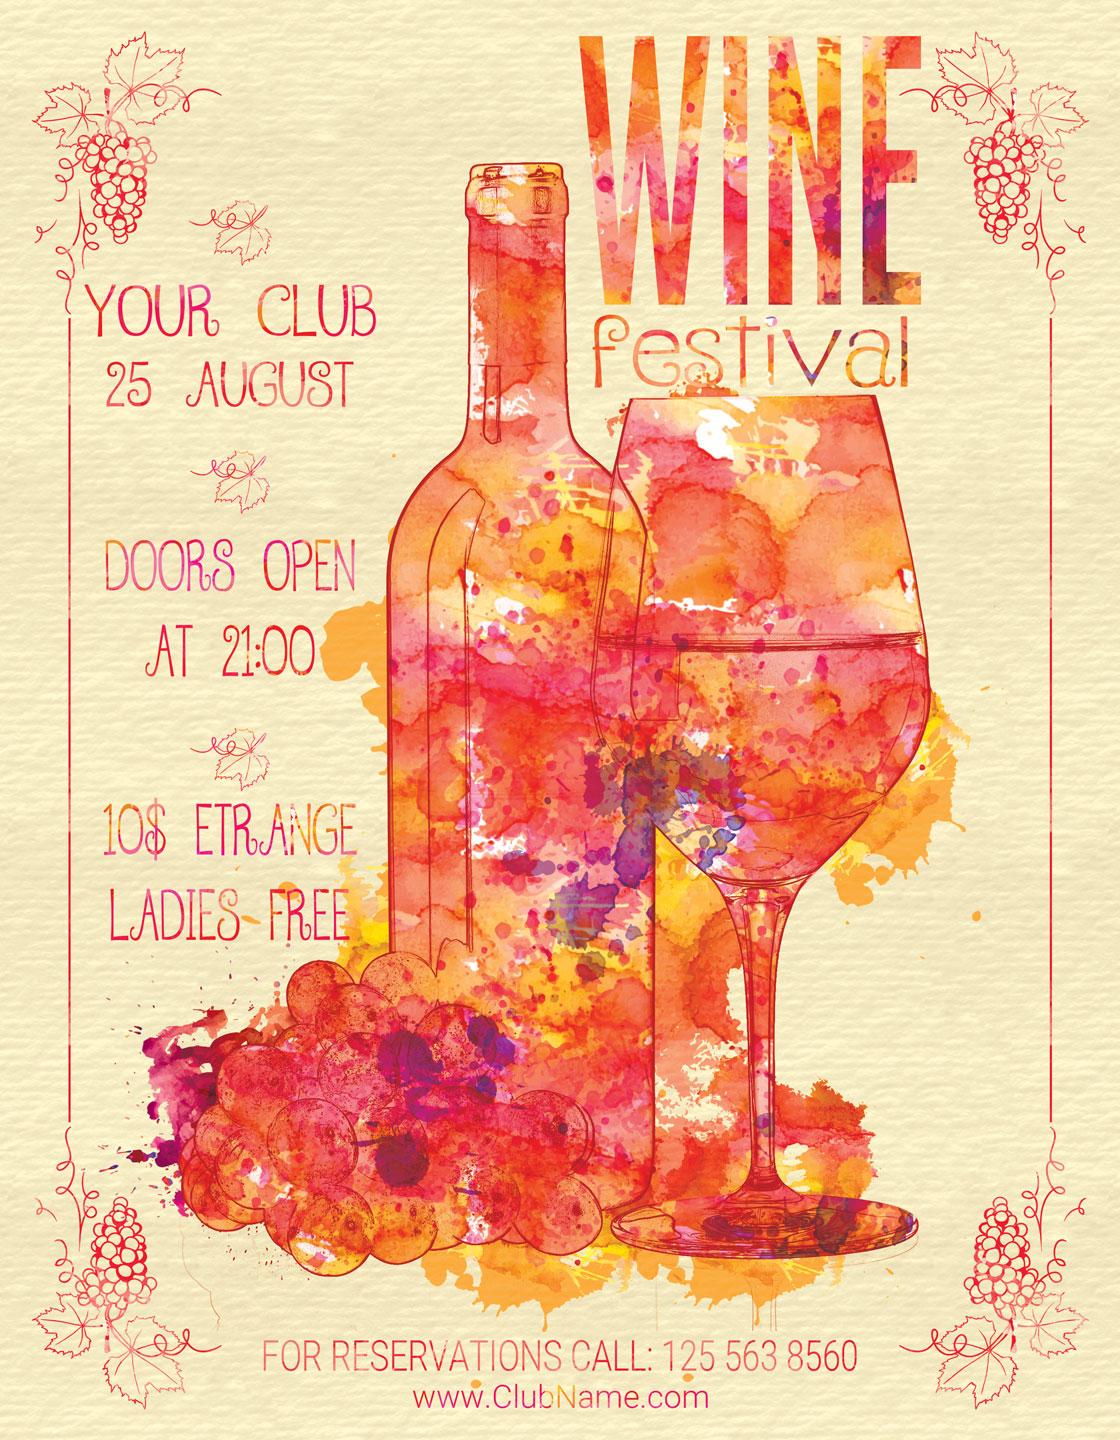 Wine Festival Flyer Poster Vintage example image 2